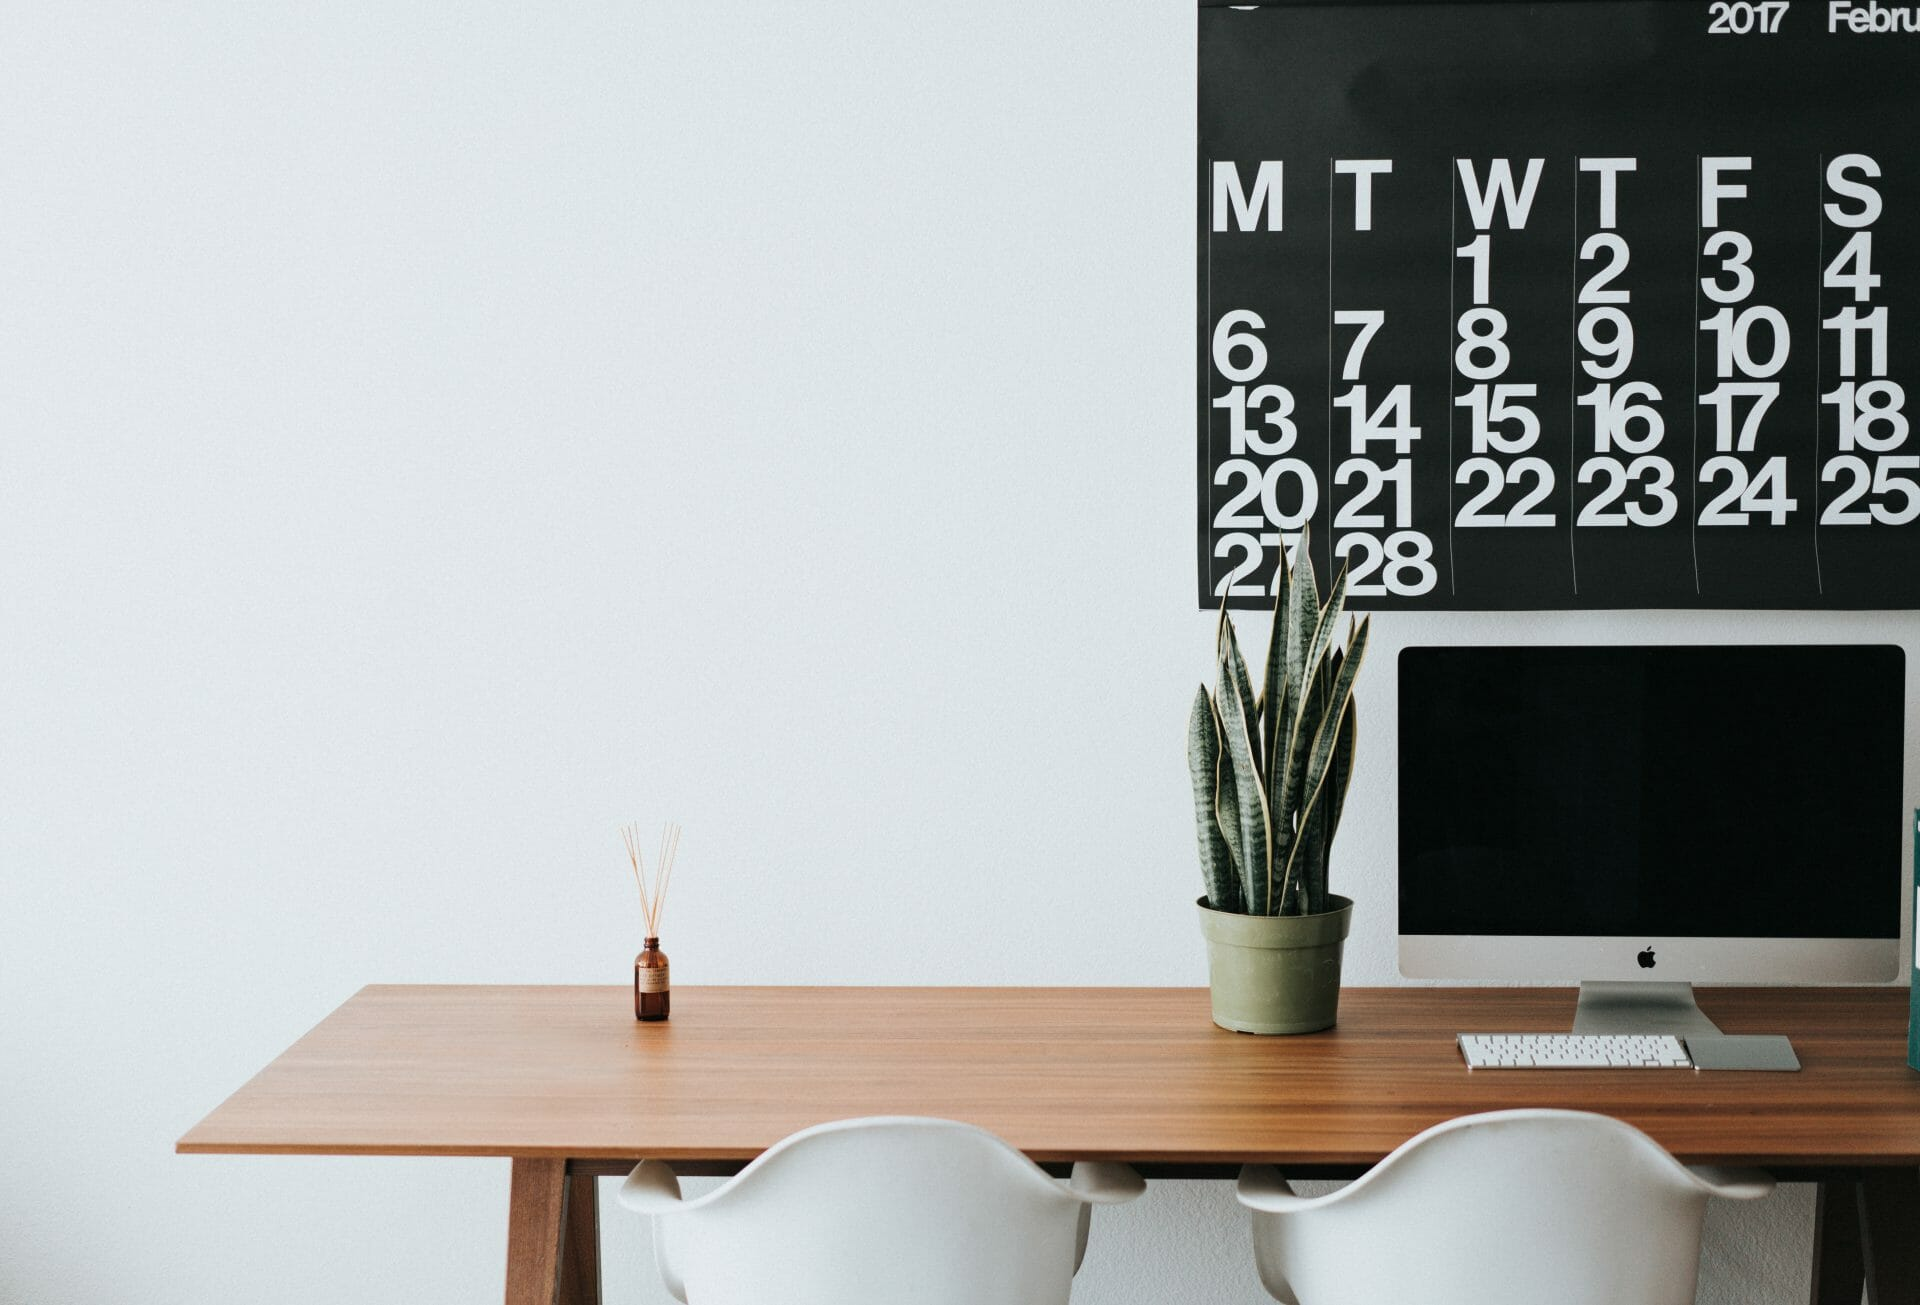 Picture of desk, plant and calendar for Real Estate News for Investors Podcast Episode #736